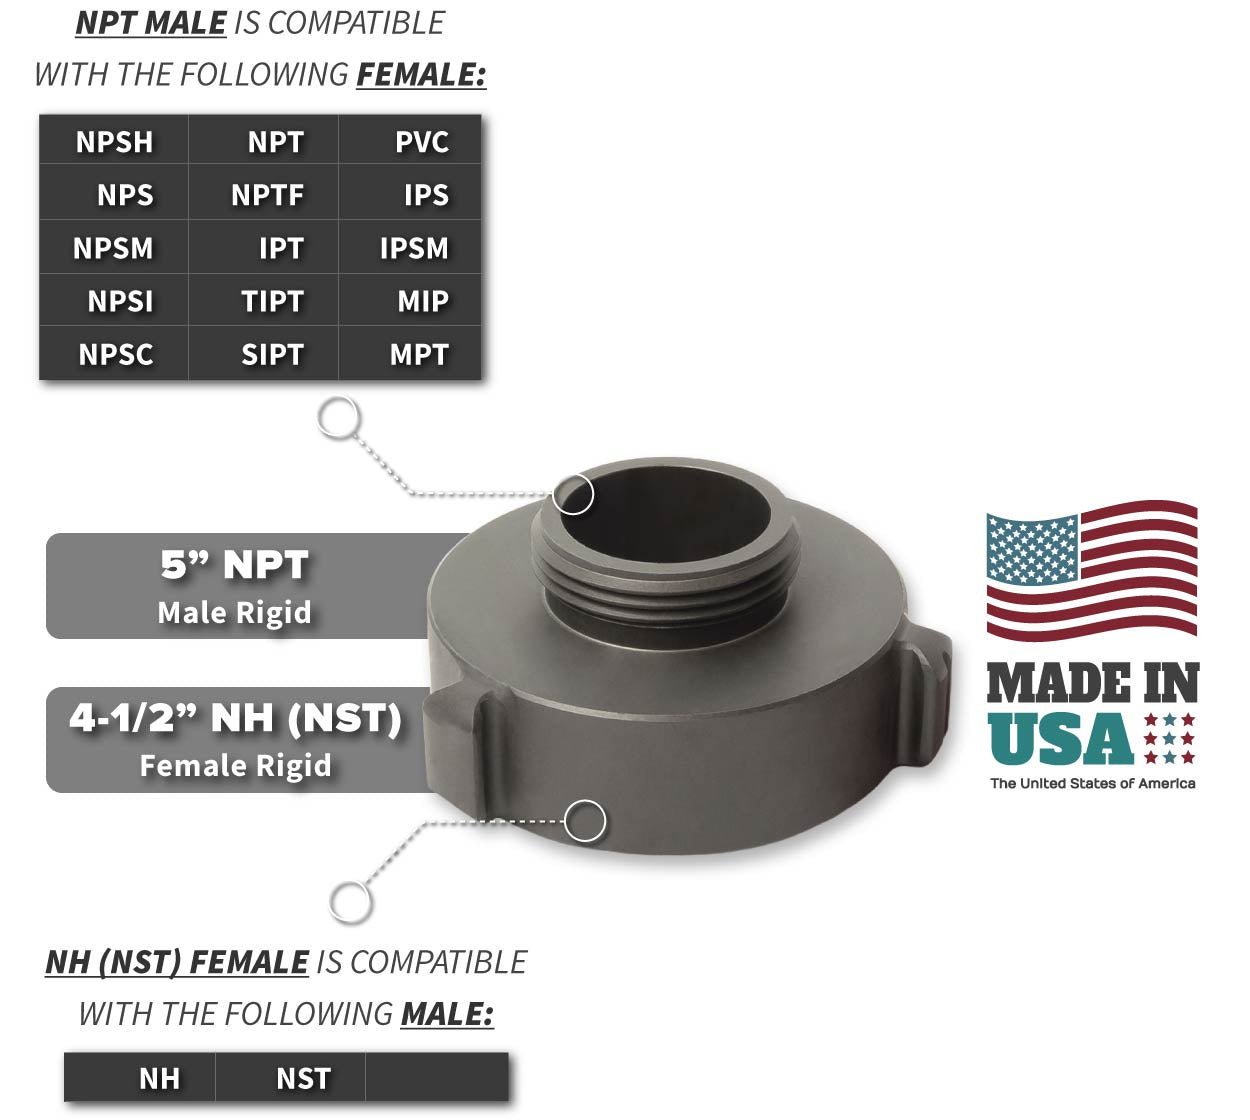 4.5 Inch NH-NST Female x 5 Inch NPT Male Compatibility Thread Chart